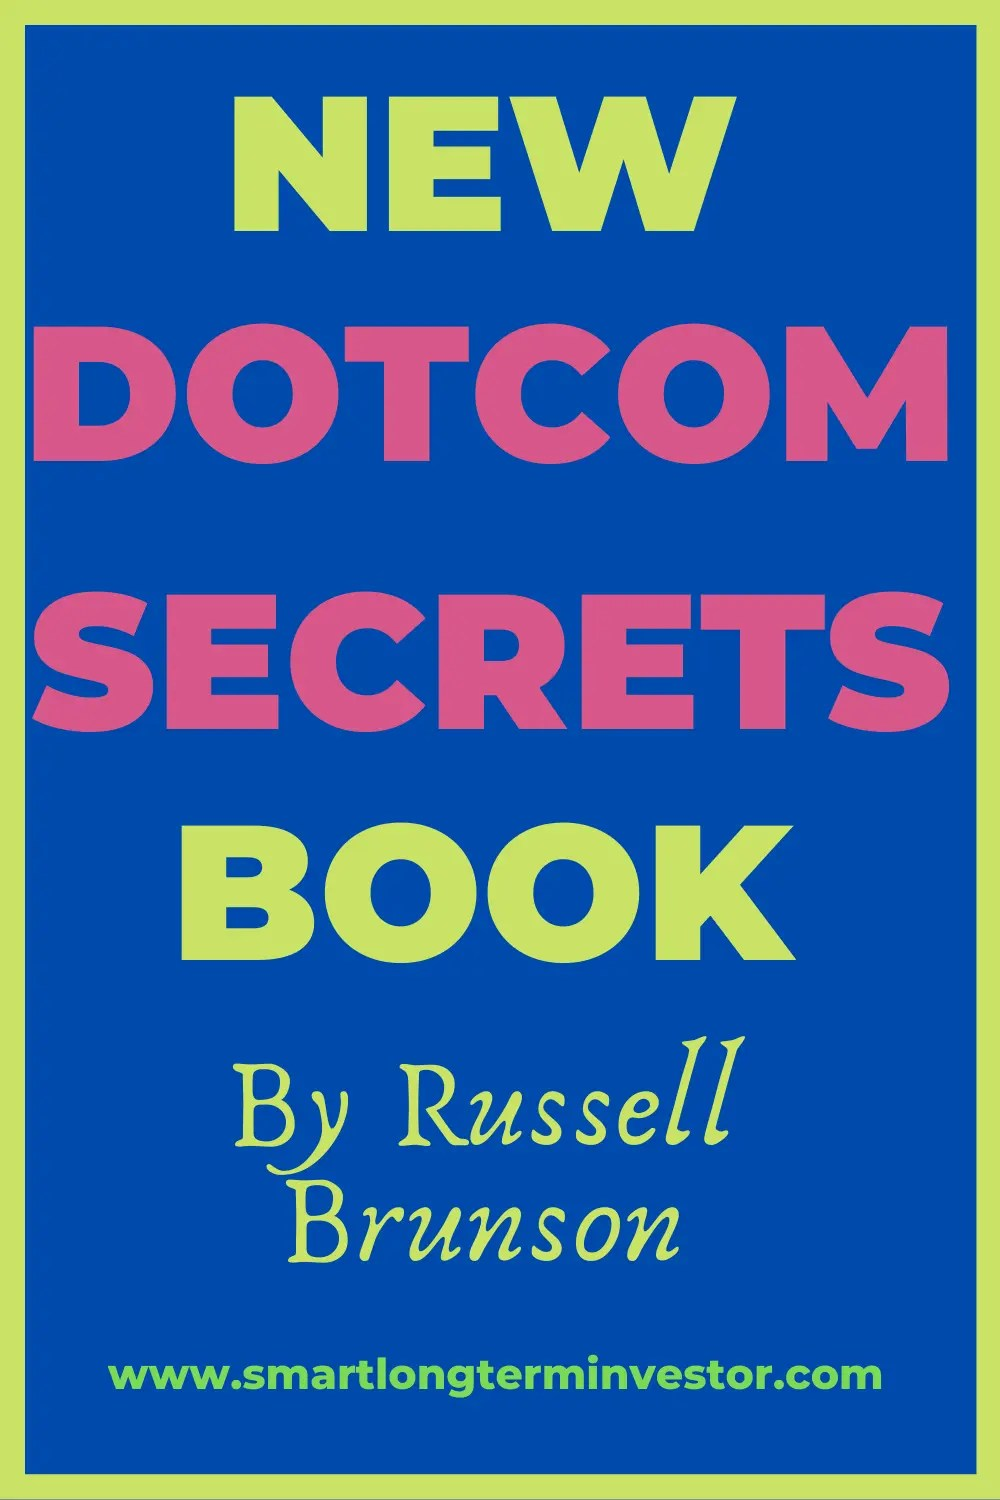 NEW DotCom Secrets Review - Ultimate Guide To Building Sales Funnels